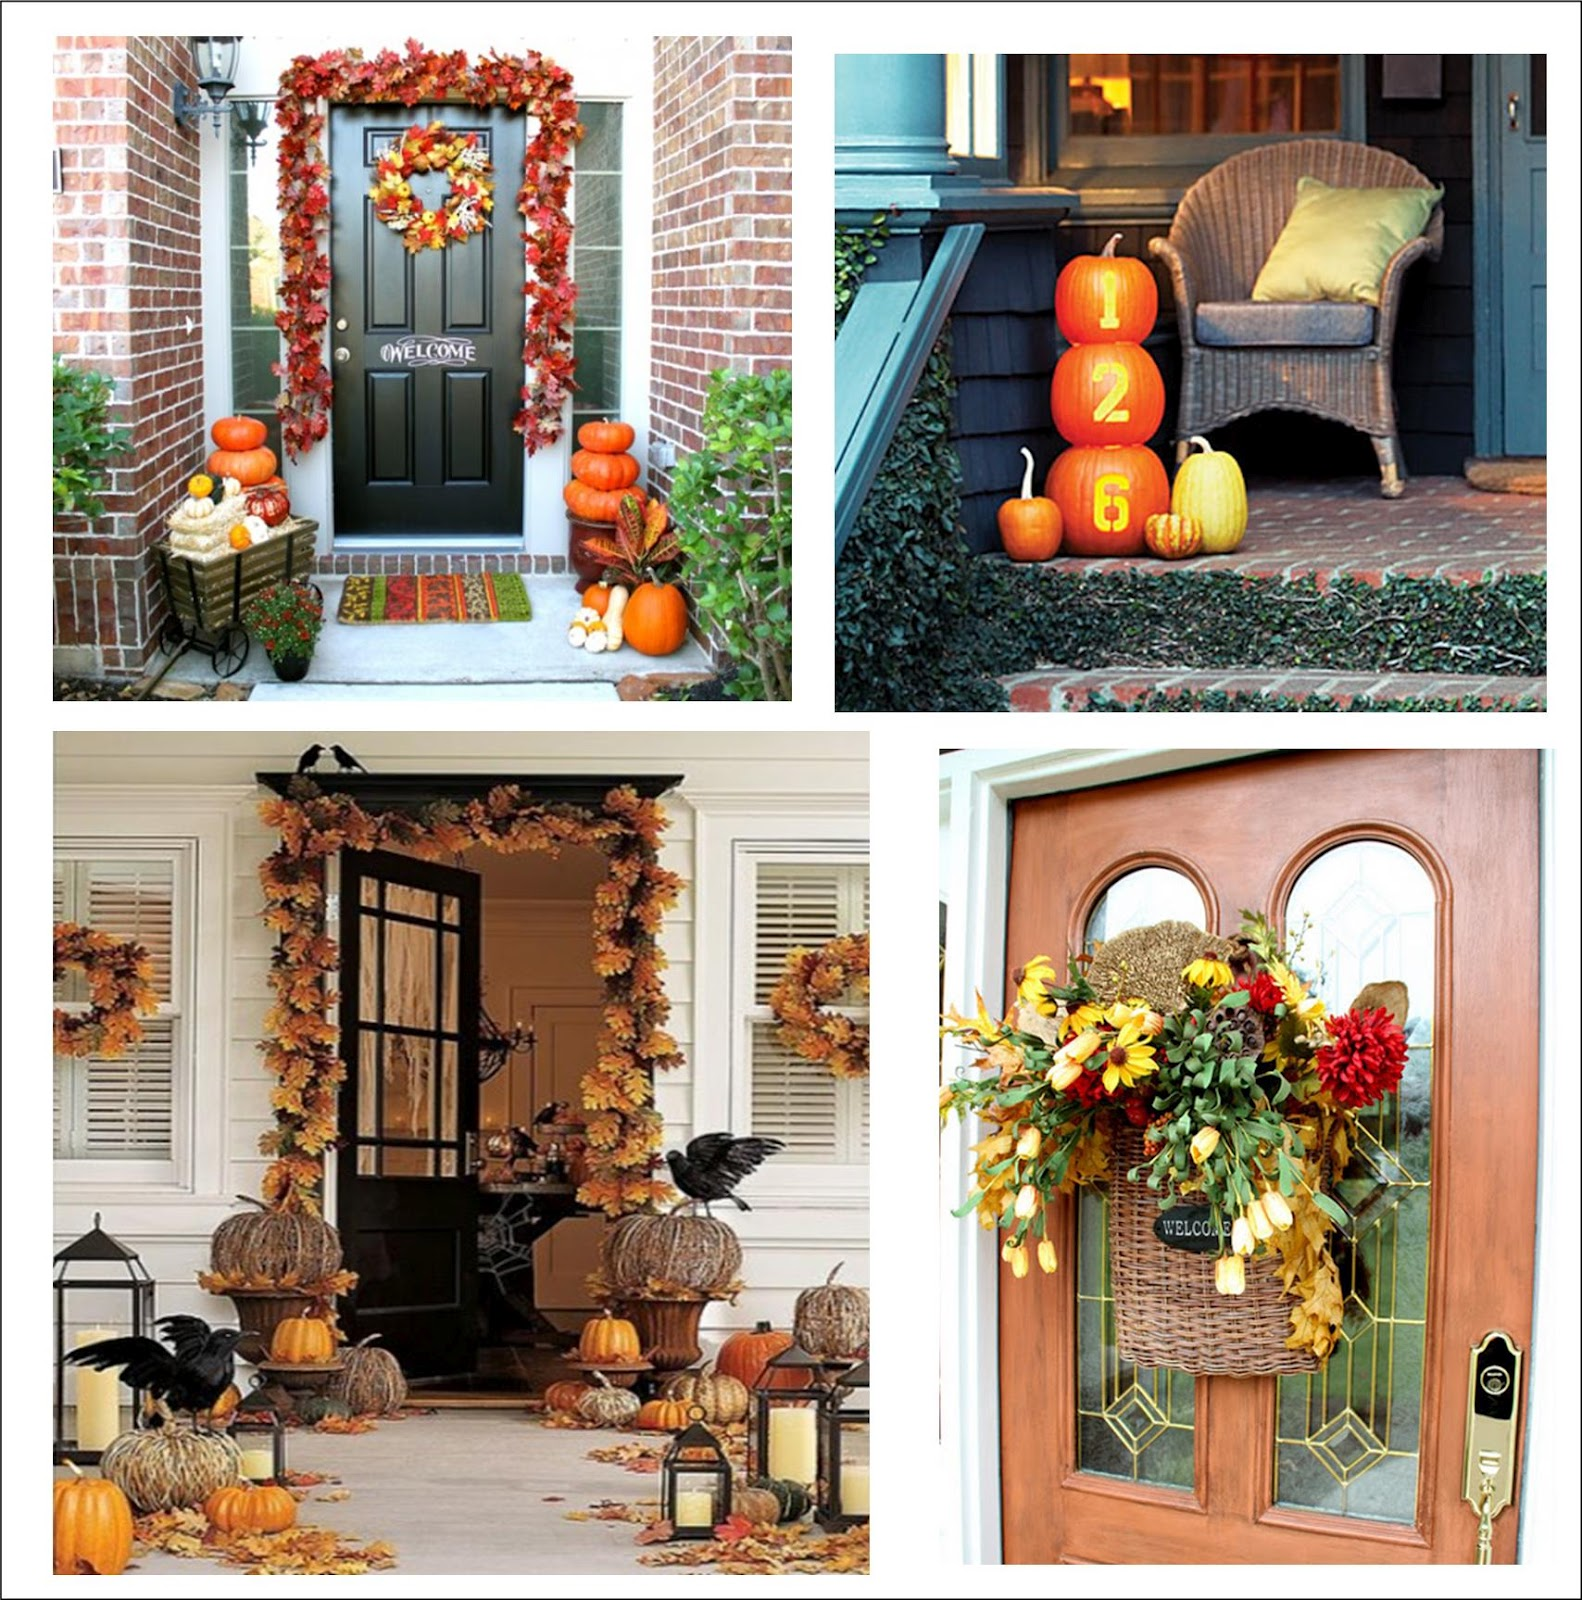 Autumn Yard Decorations: It's Written On The Wall: 90 Fall Porch Decorating Ideas